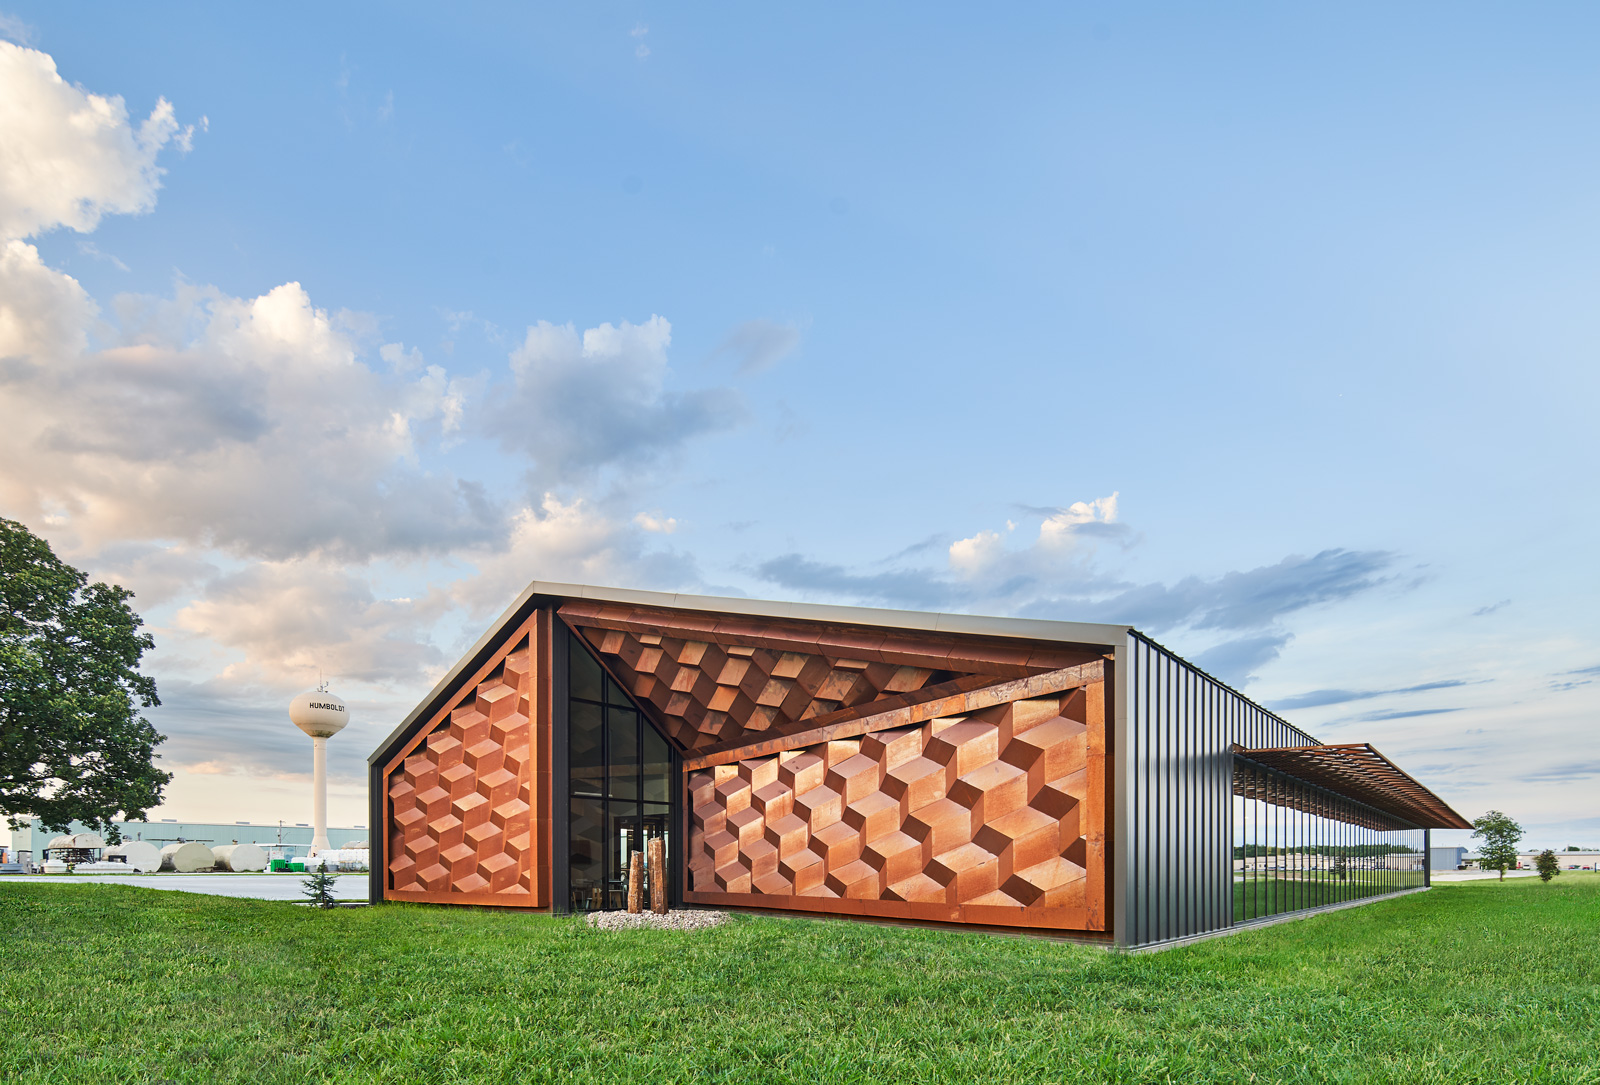 A modern building with a gabled roof and gray metal facade. The ends of the building are clad in rust-toned metal that looks like a raised checkerboard pattern.